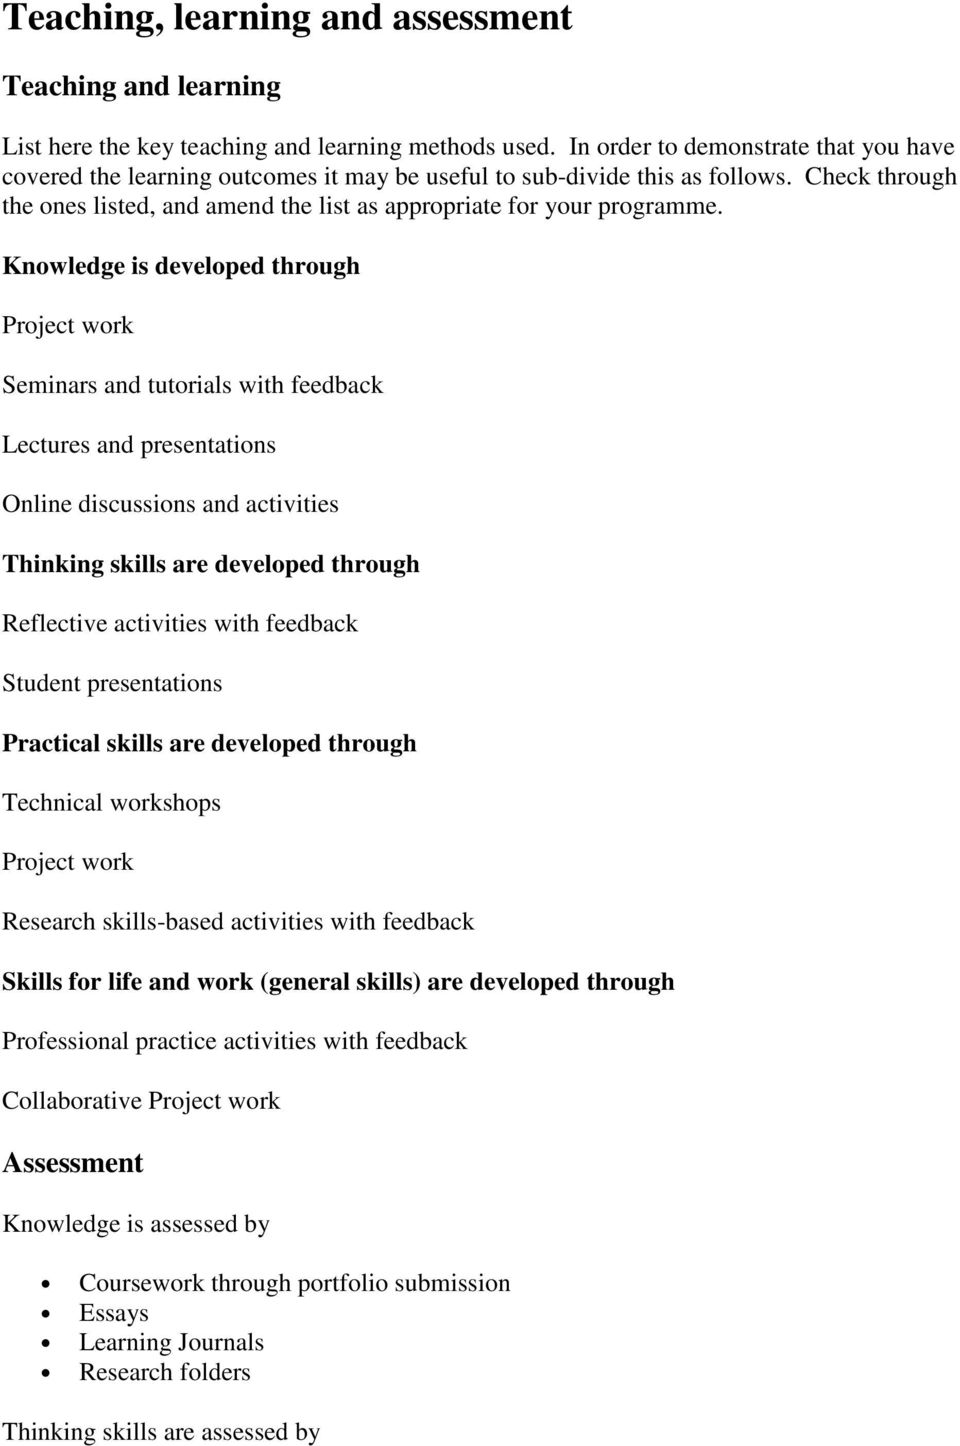 Knowledge is developed through Project work Seminars and tutorials with feedback Lectures and presentations Online discussions and activities Thinking skills are developed through Reflective